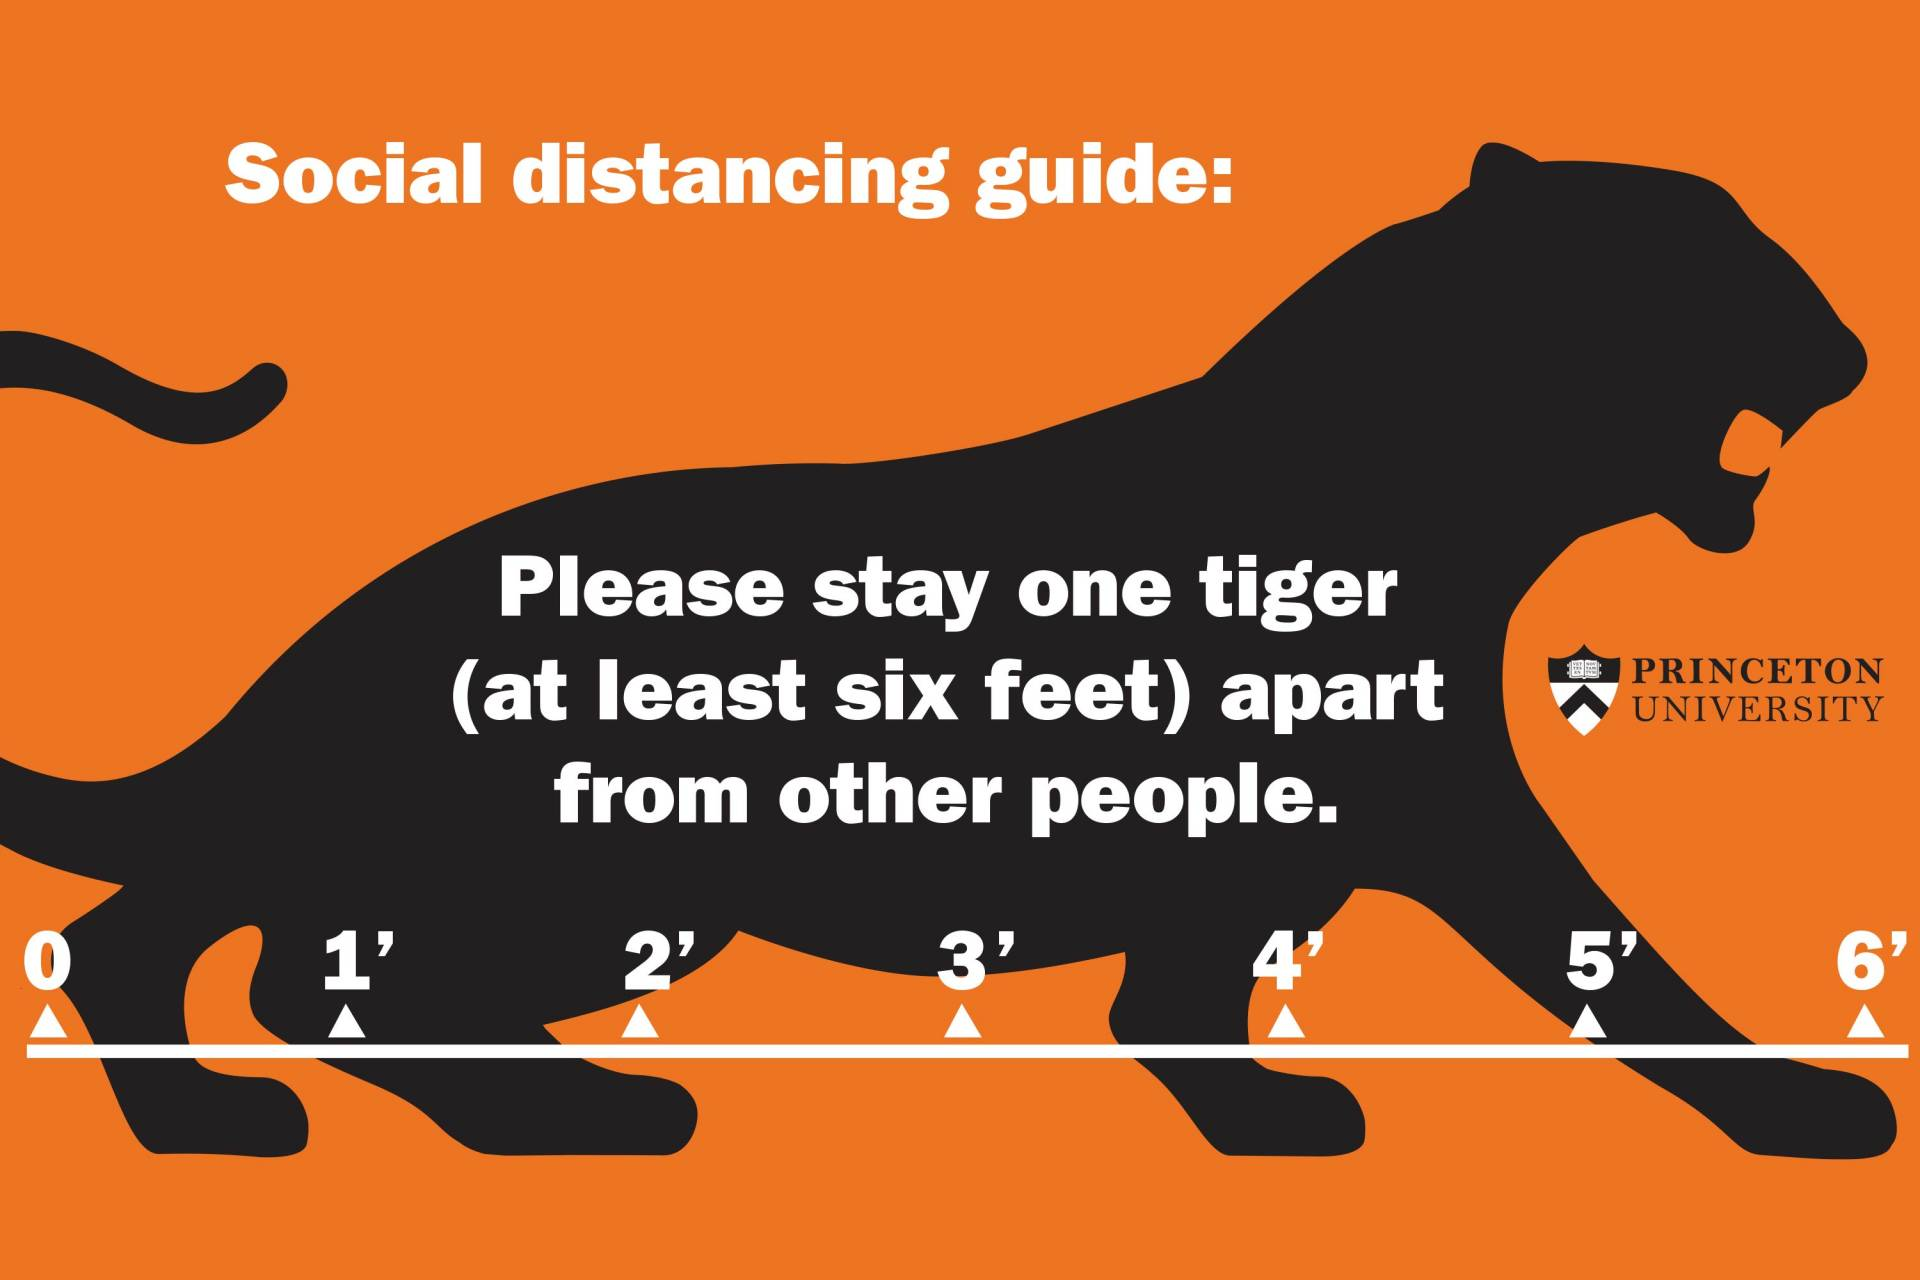 """""""Social distancing guide: Please stay one tiger (at least 6 feet) apart from other people"""""""